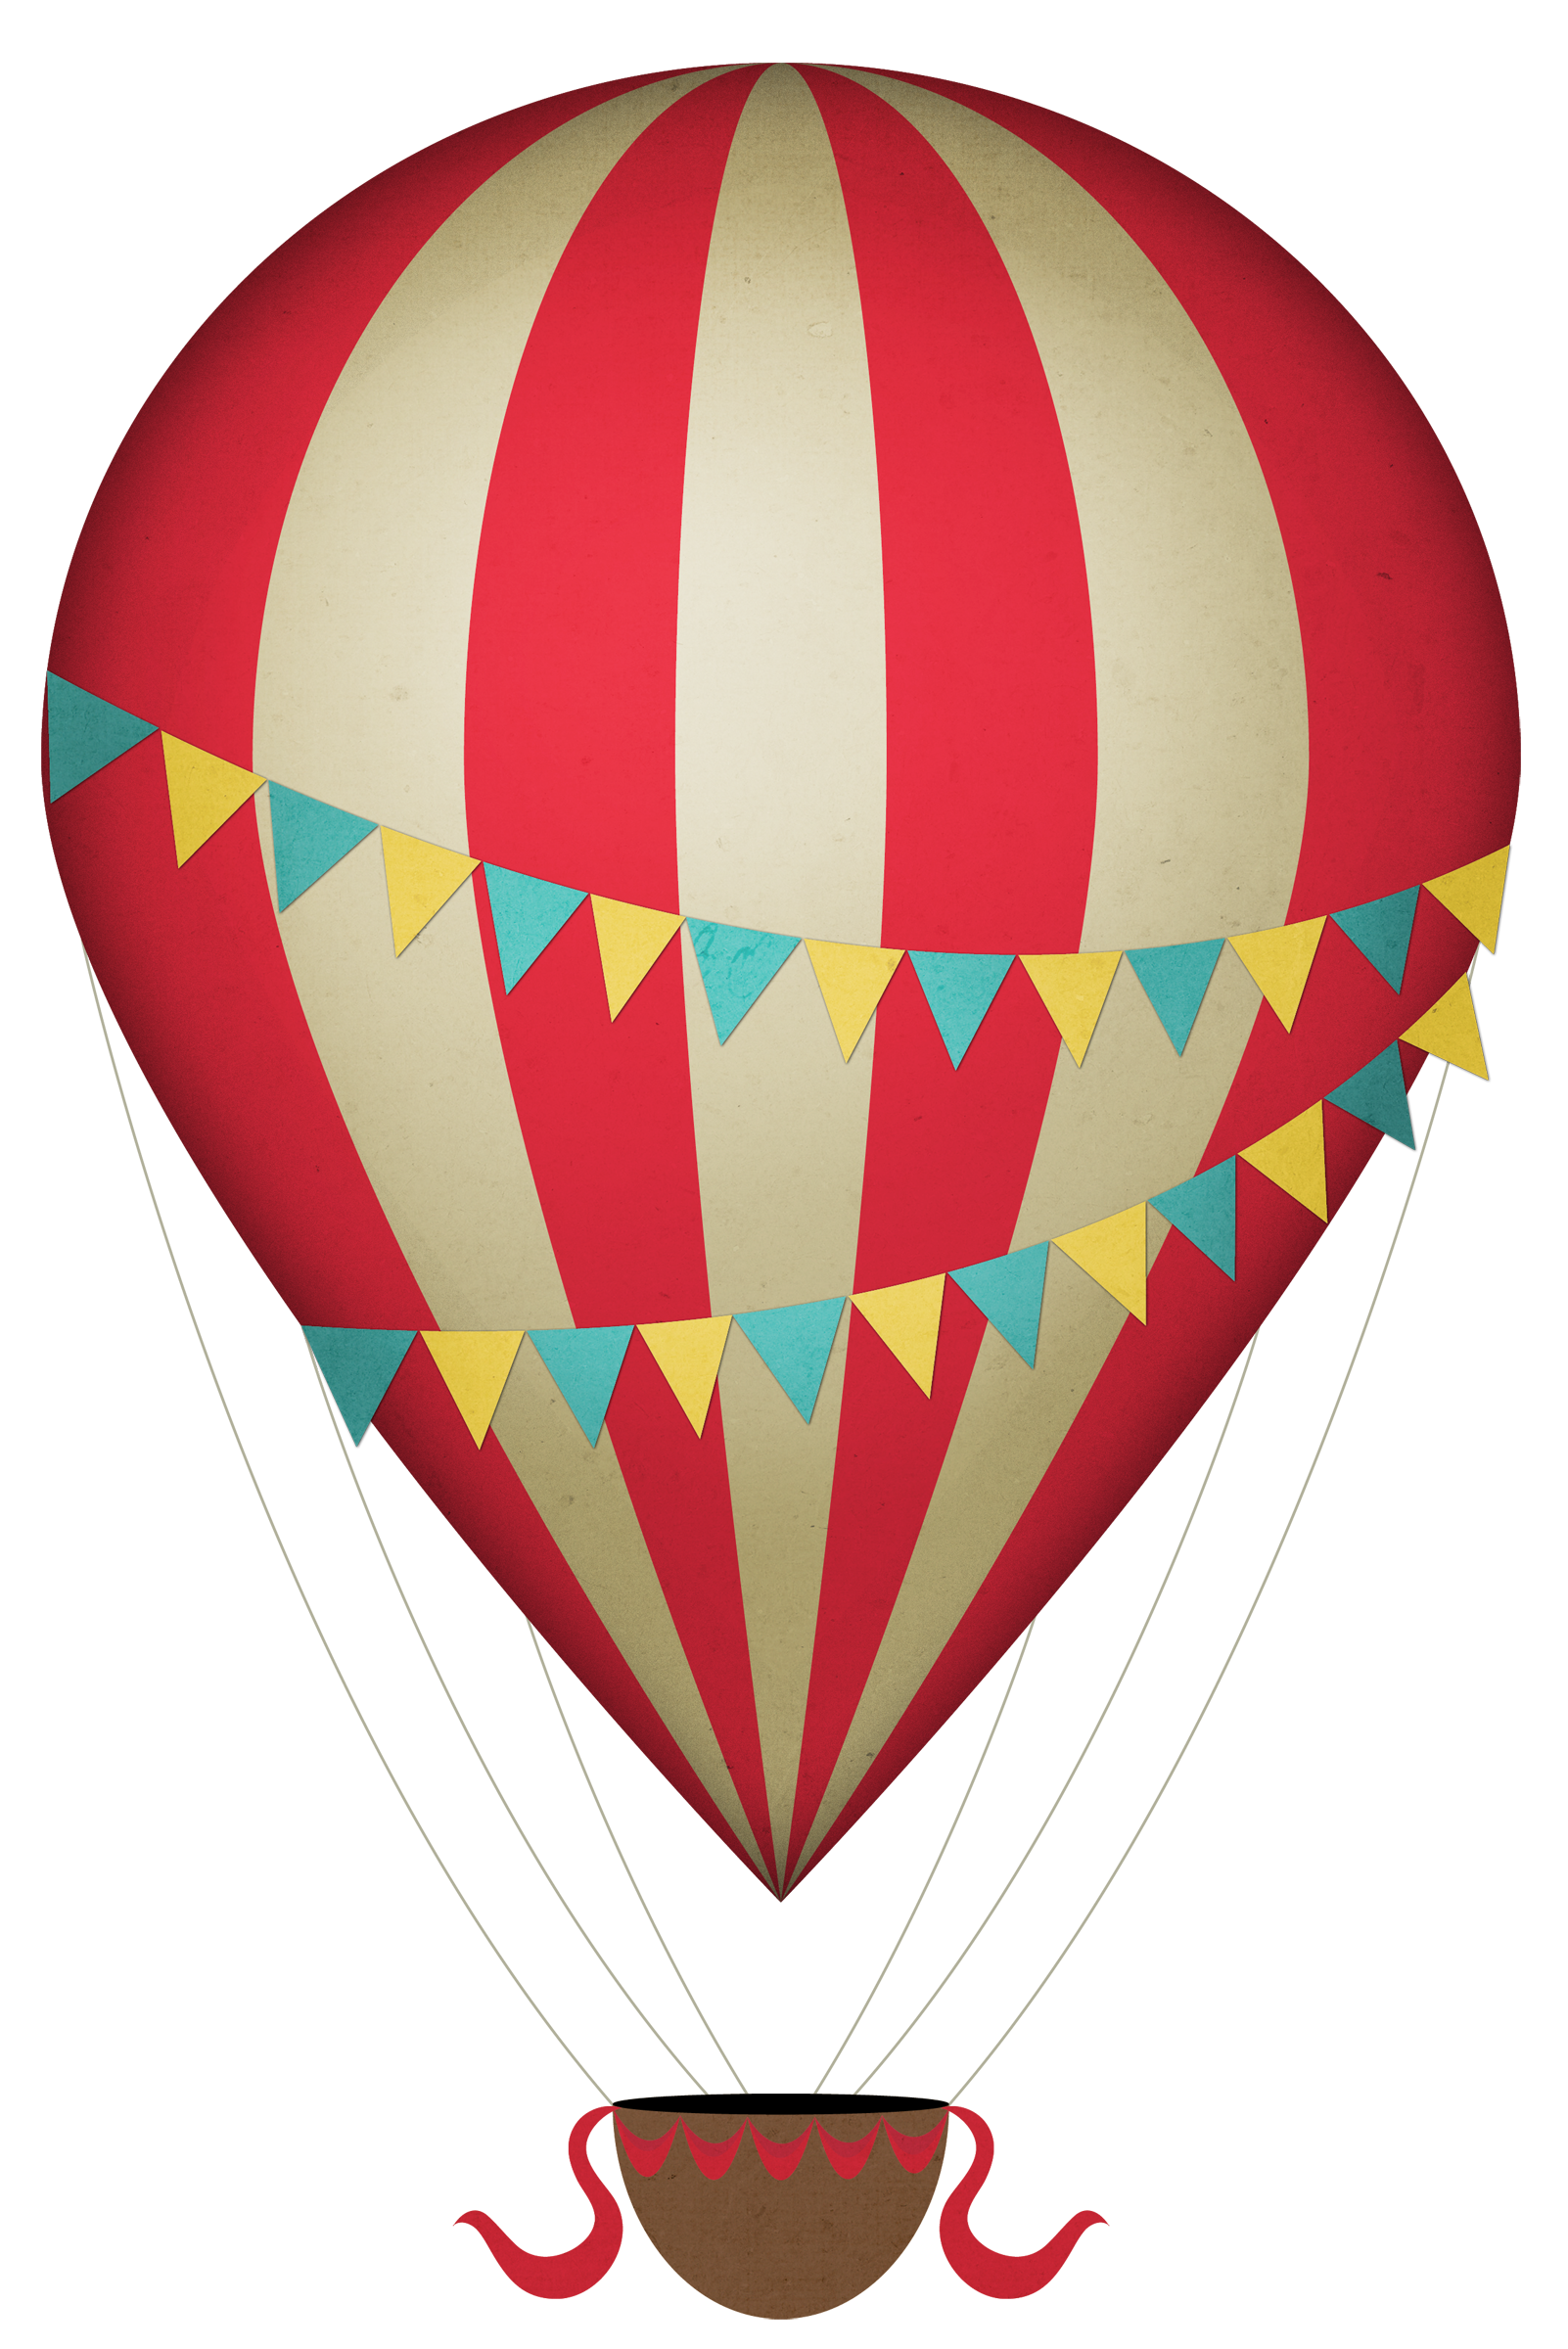 Zeppelin drawing balloon. Air png images free